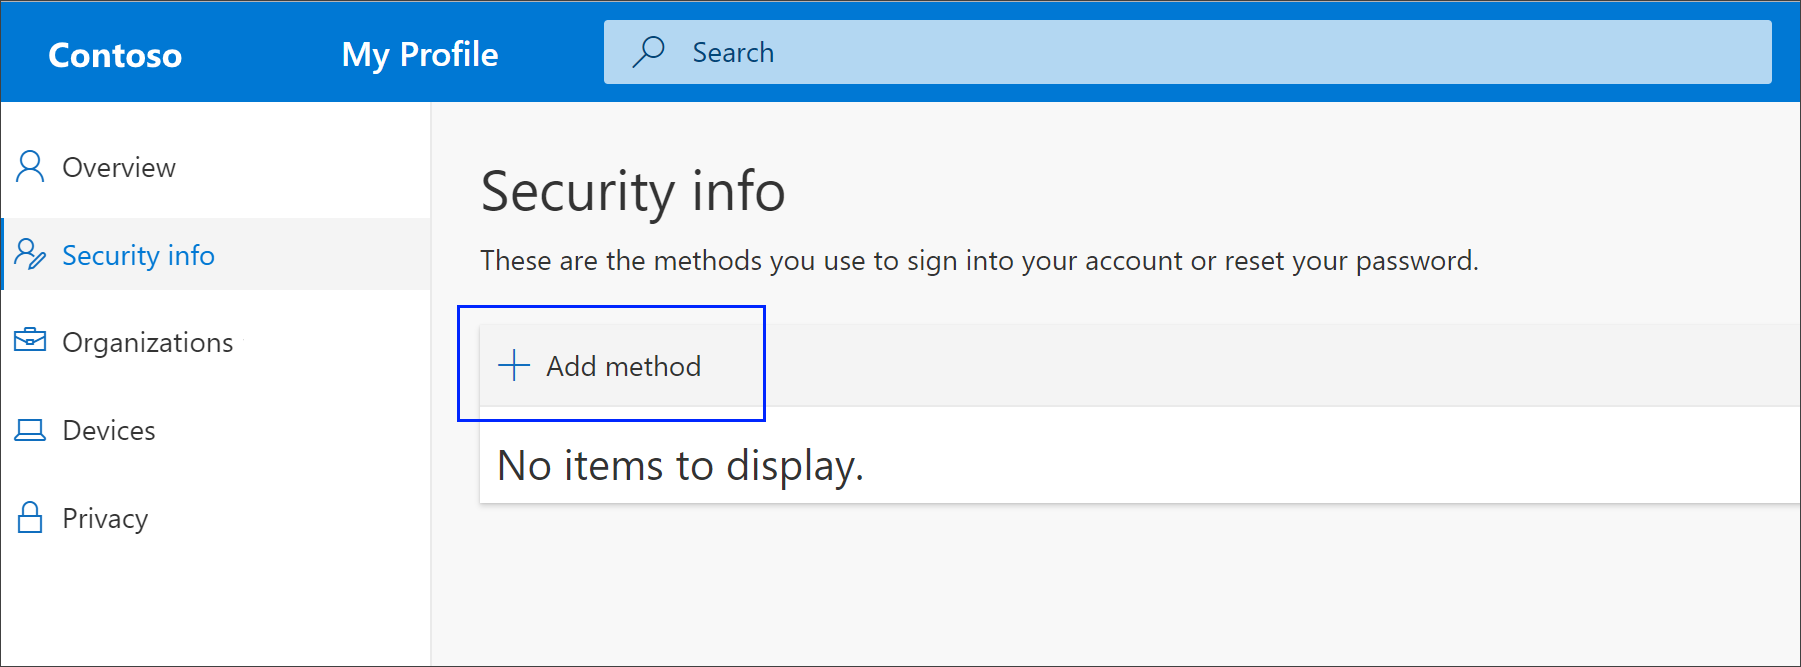 Security info page with highlighted Add method option